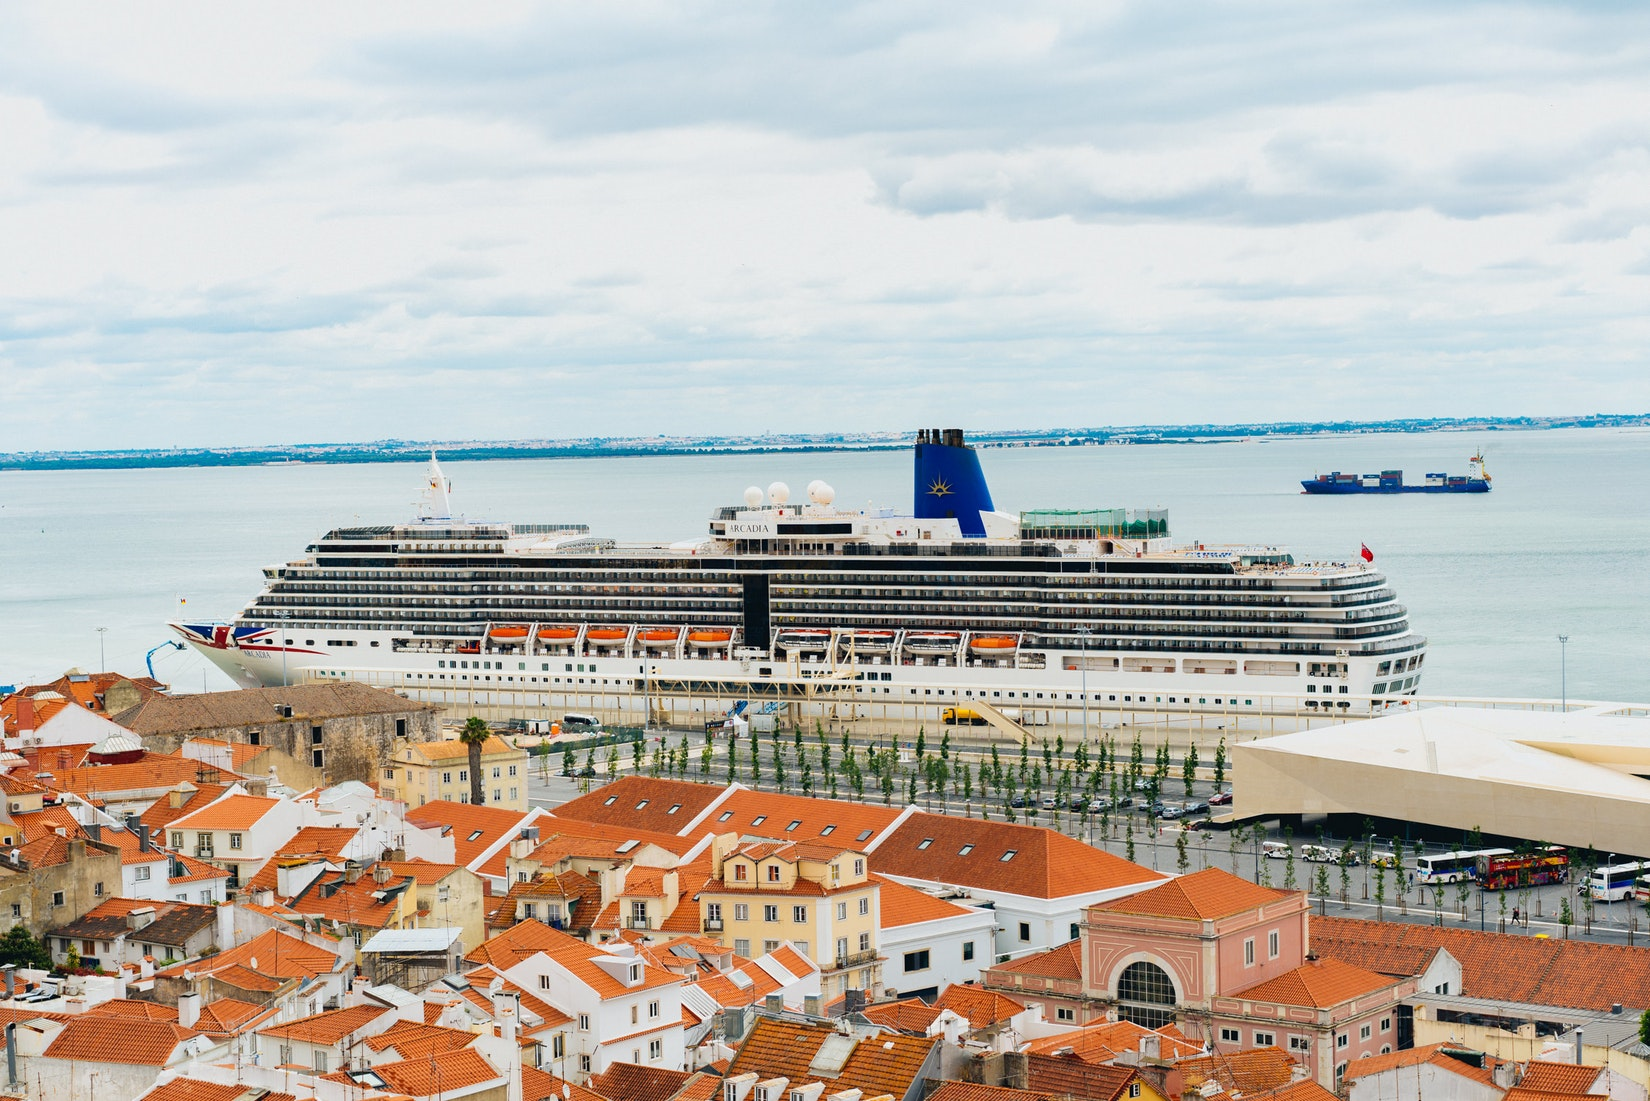 View of a cruise ship from Miraduoro de Santa Luiza in Lisbon, Portugal's Alfama district